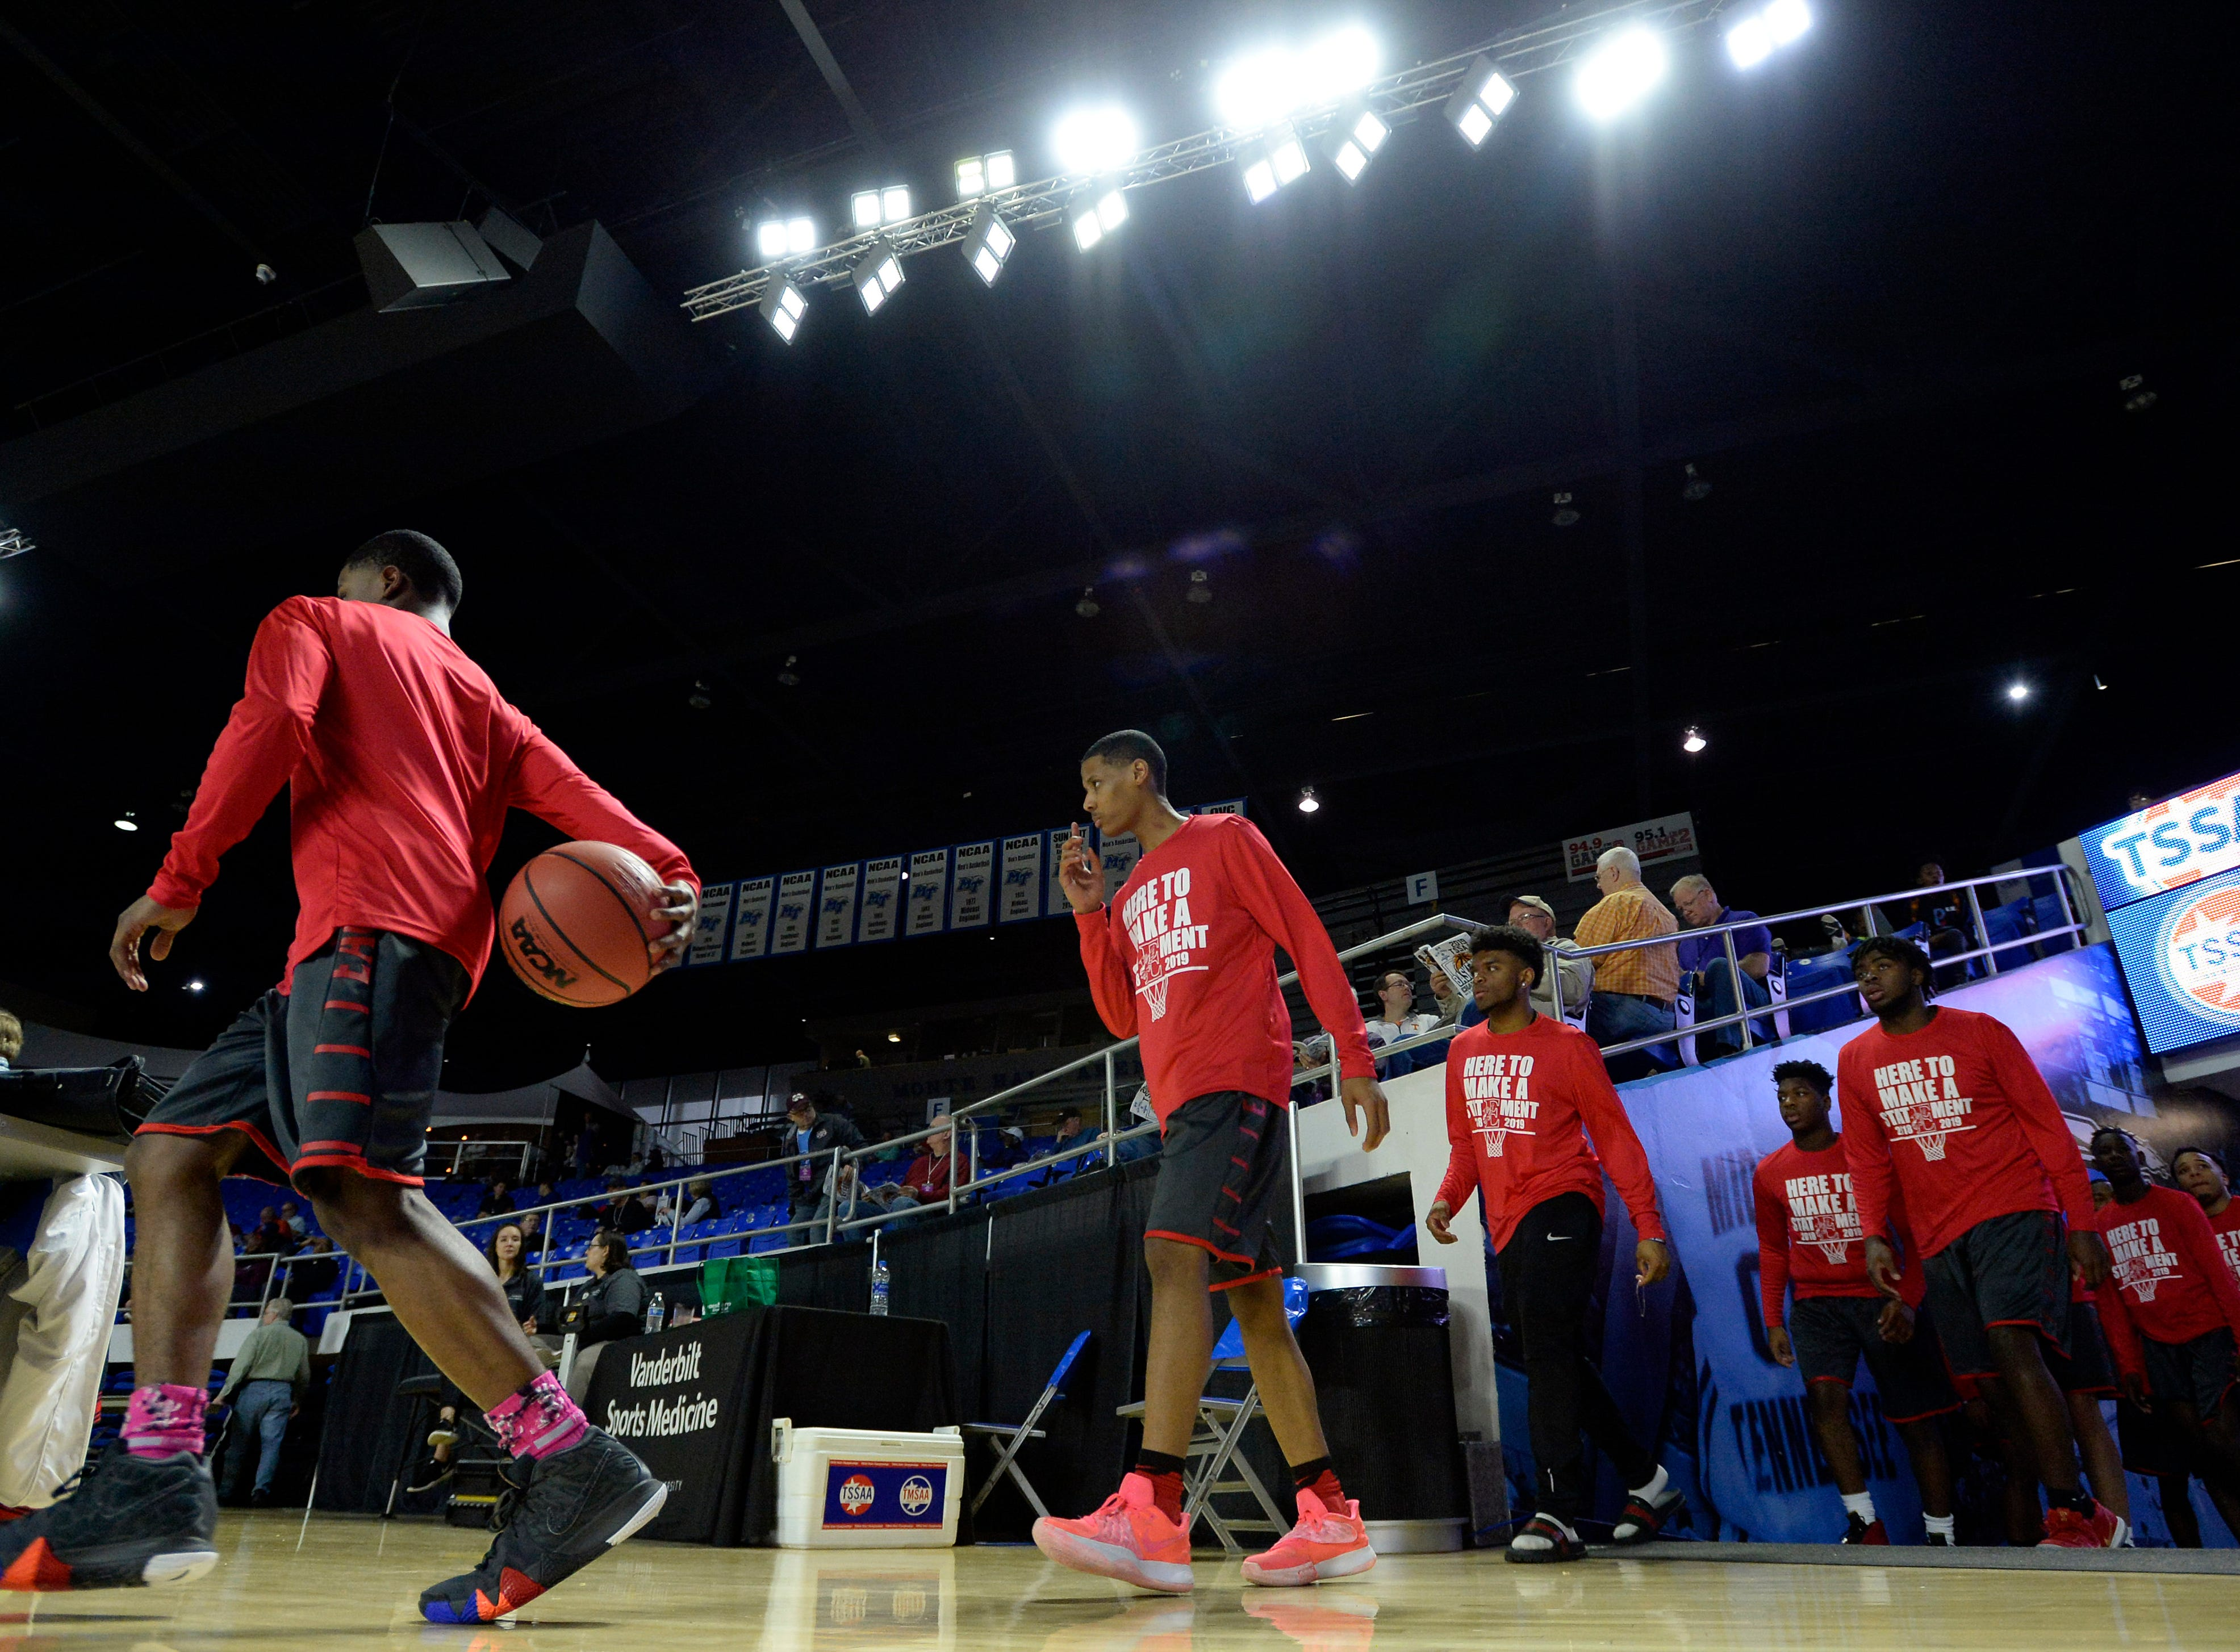 East Nashville players walk onto the court to warm up before playing Howard in a Class AA boys' state basketball quarterfinal game Wednesday, March 13, 2019, in Murfreesboro, Tenn.